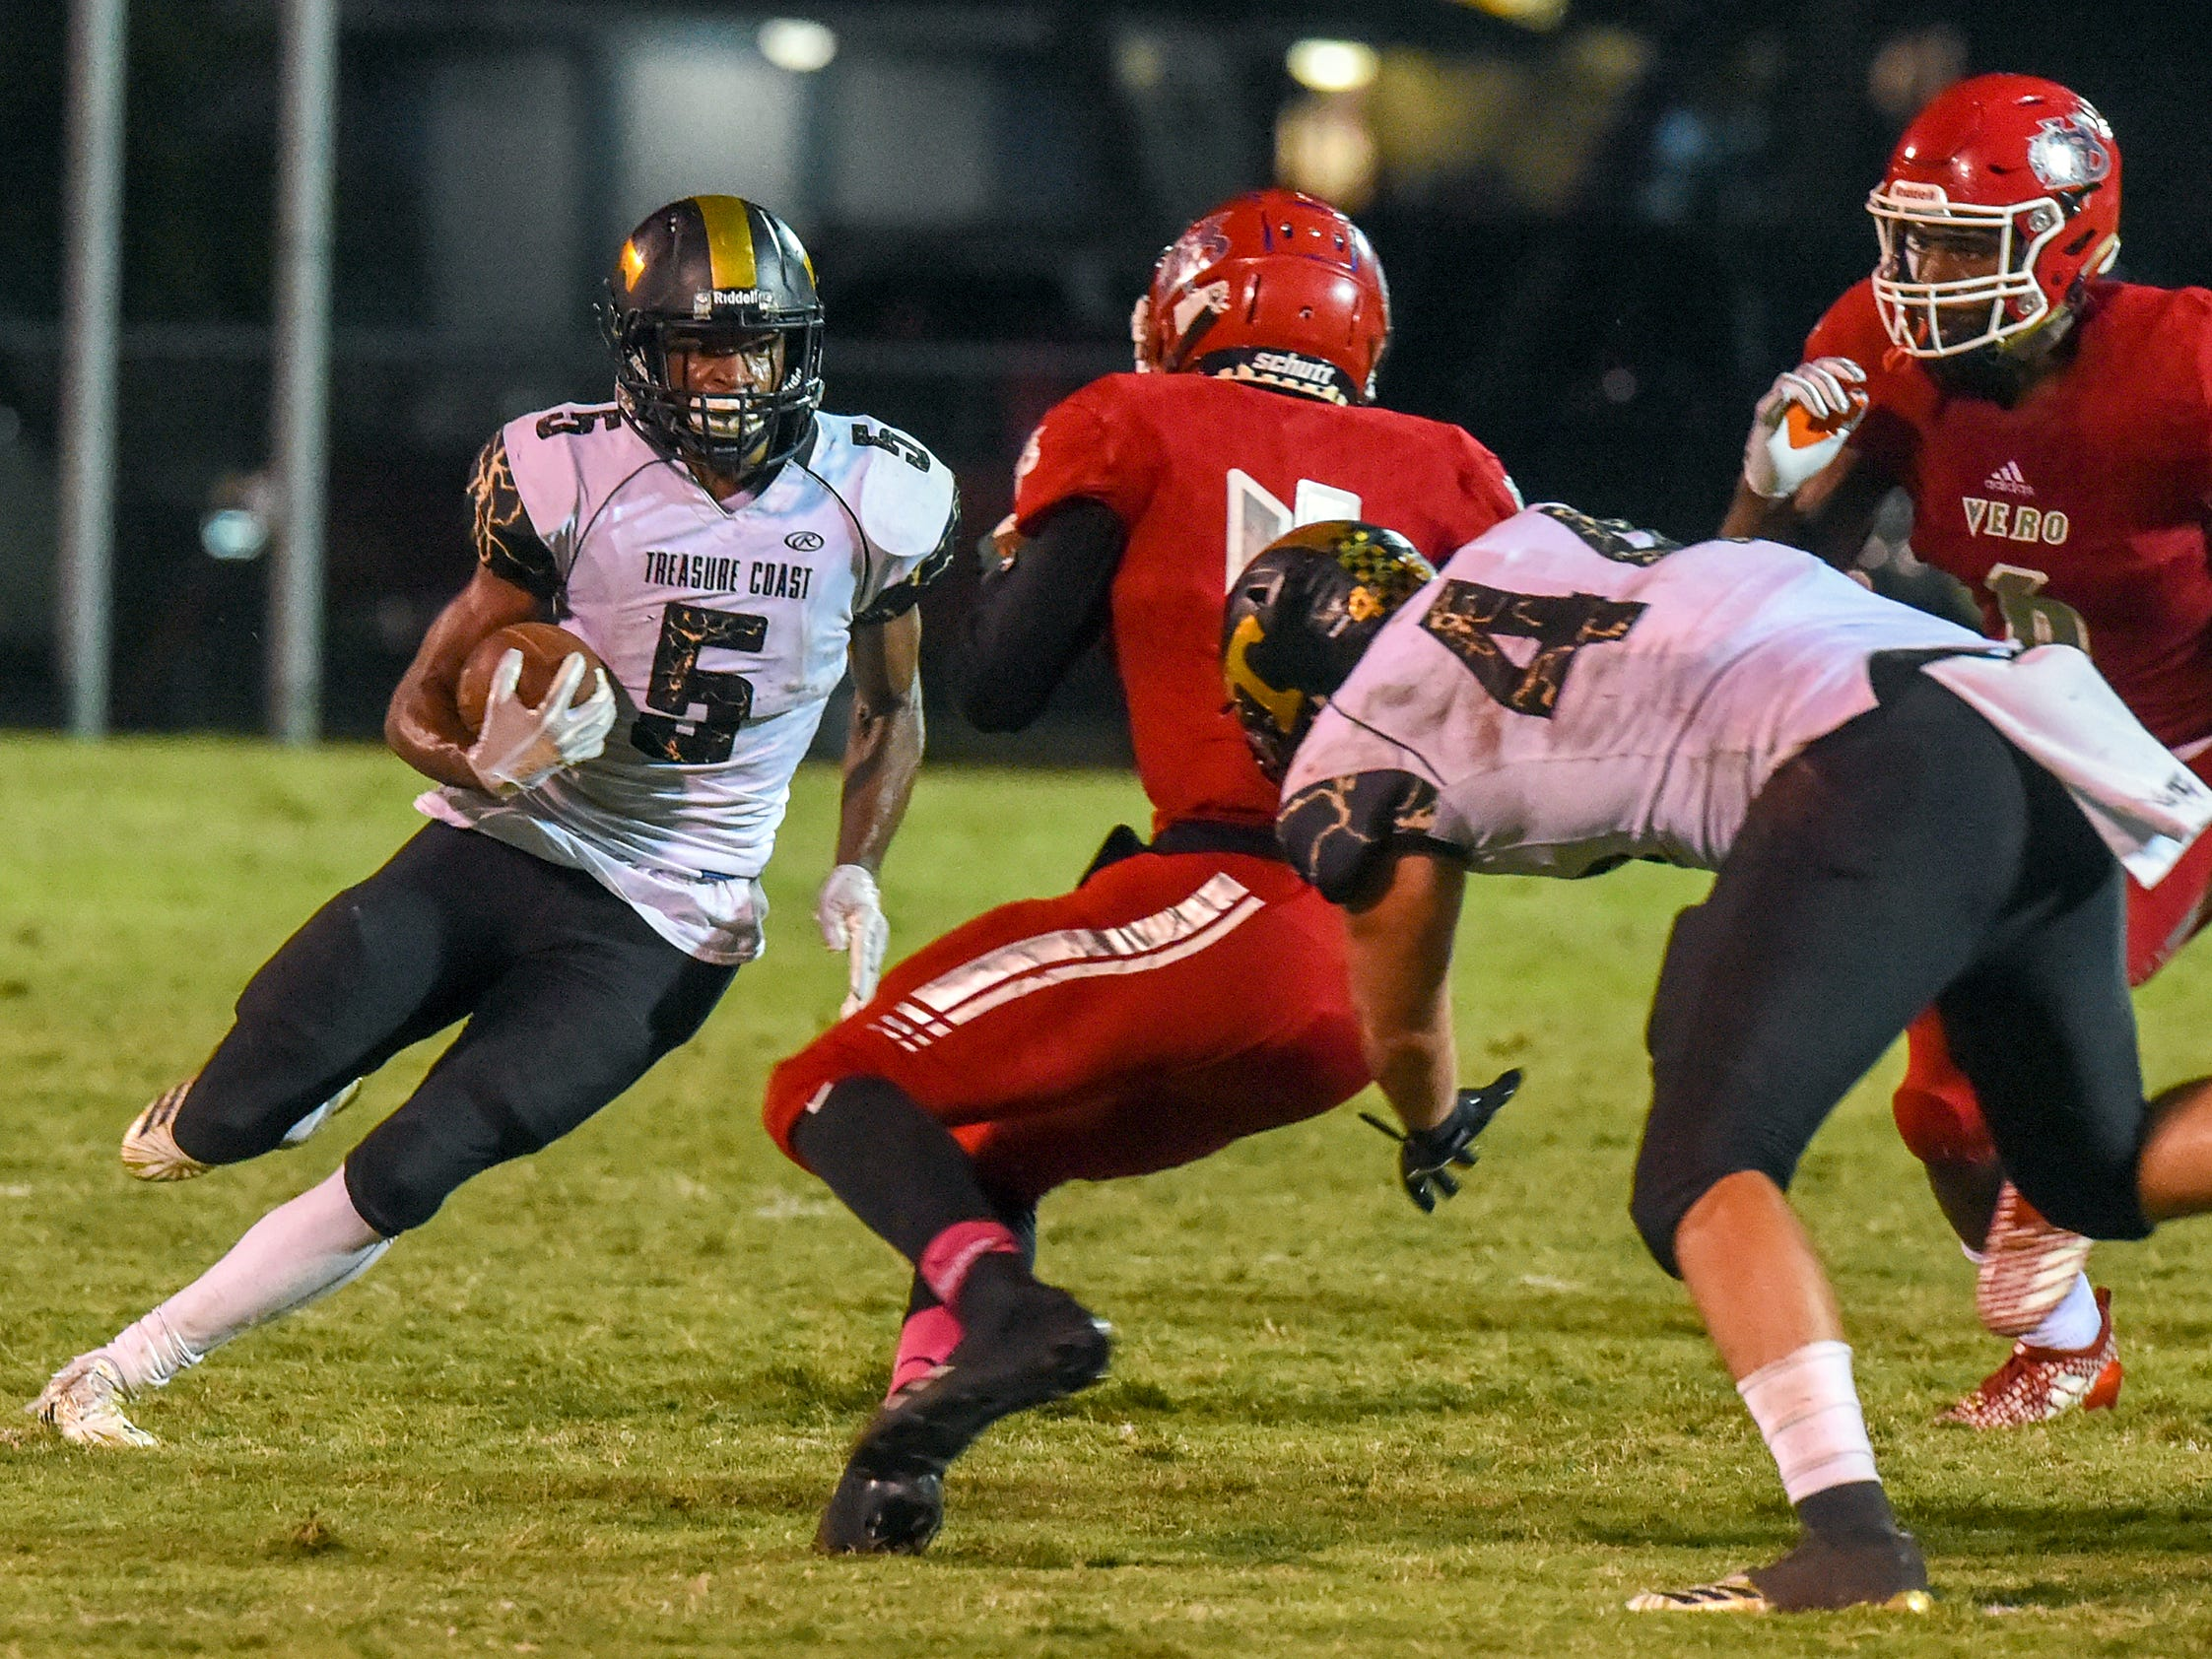 Treasure Coast's Shamar Minnis gets down field Friday, Oct. 12, 2018, during his team's high school football game against Vero Beach at Vero Beach High School. Vero Beach defeated Treasure Coast 34-31.